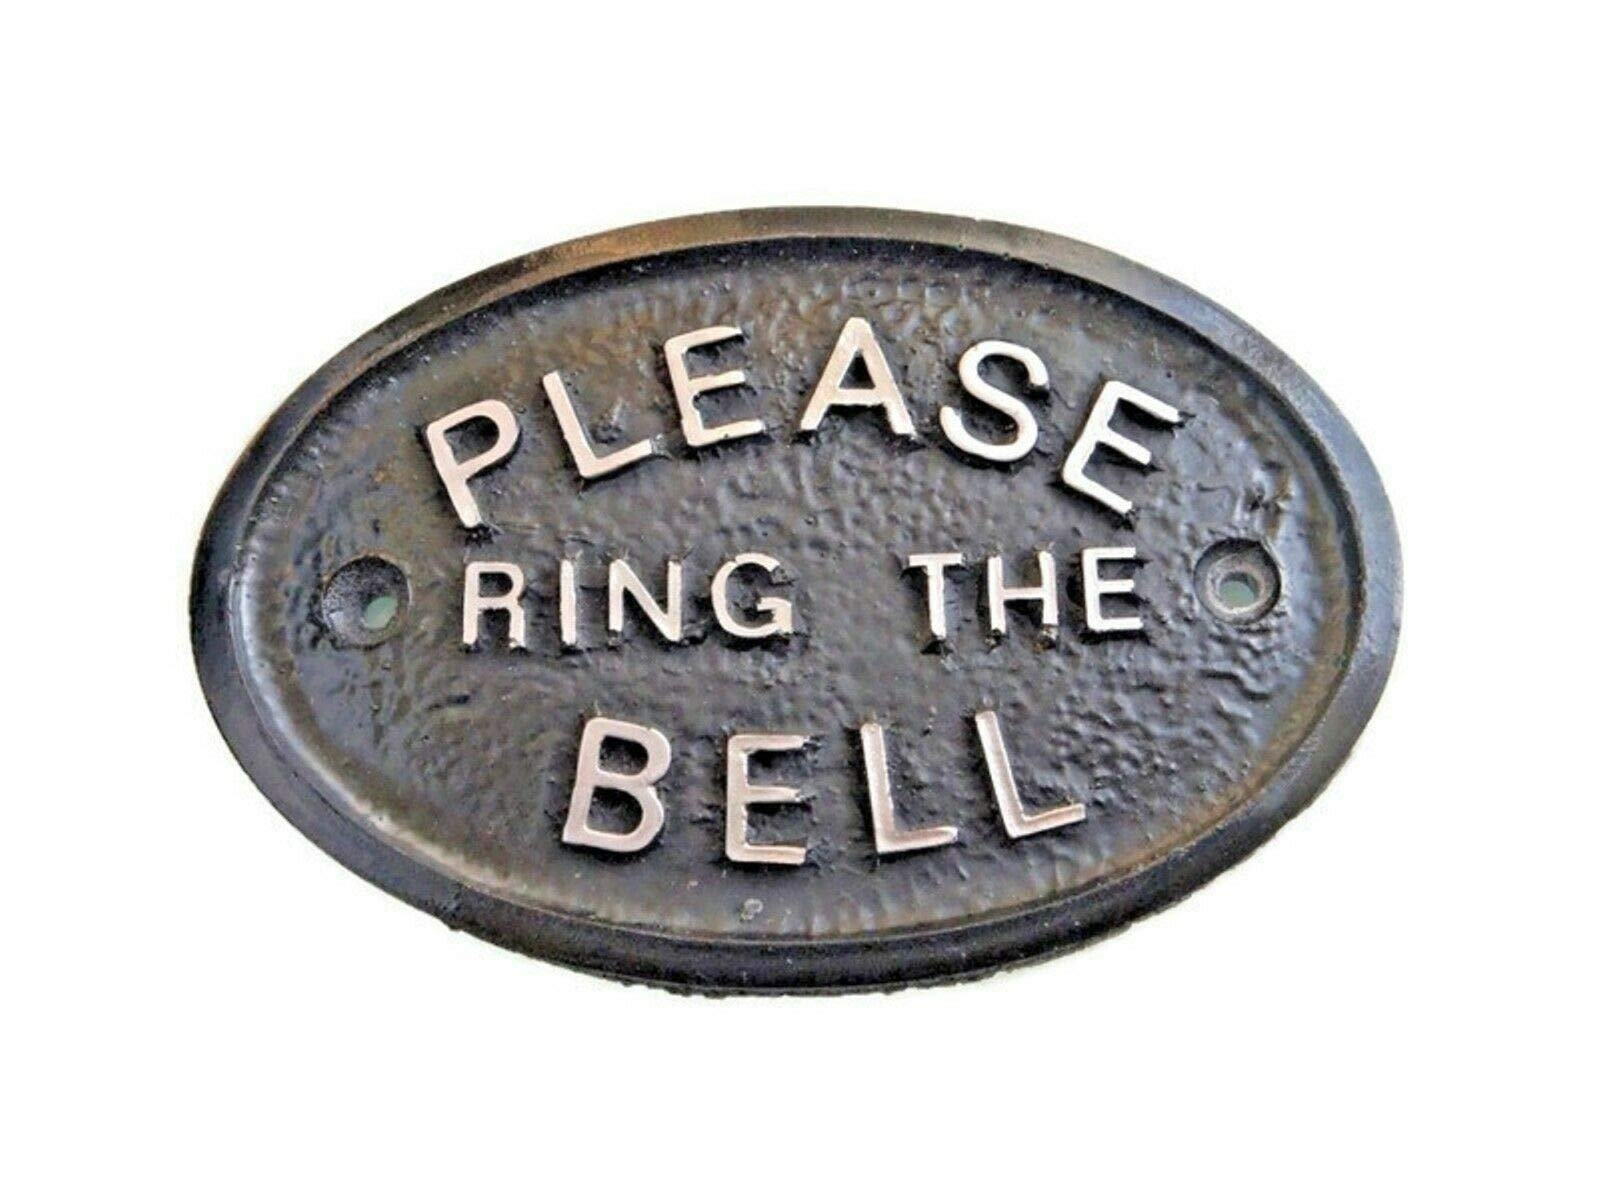 Silver Please Ring The Bell House/Garden Wall Plaque in (Black)